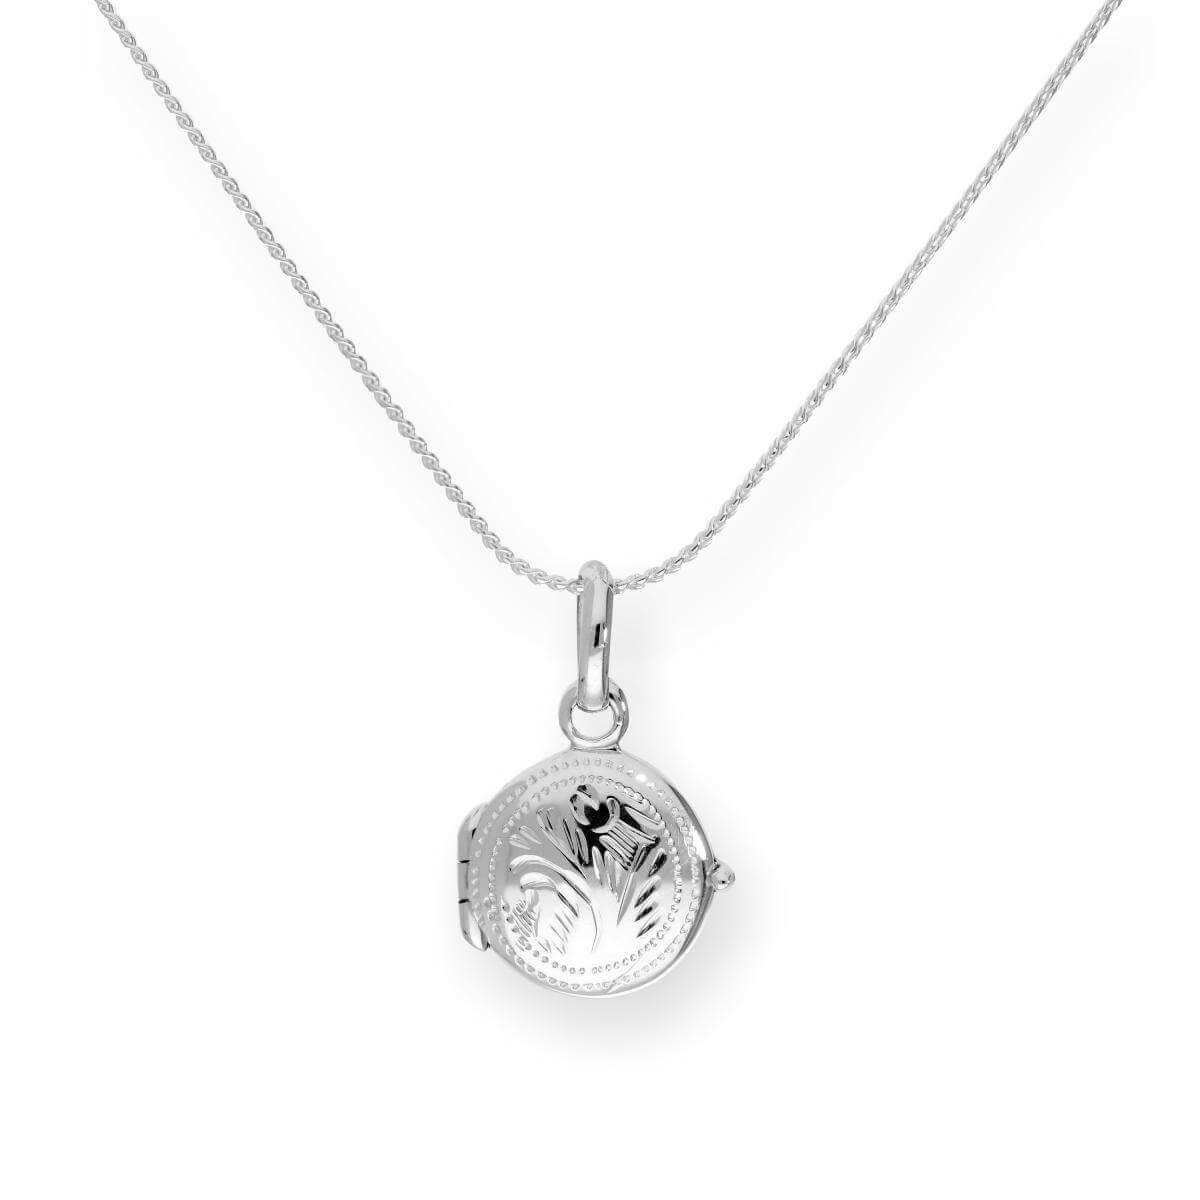 Tiny Sterling Silver Round Engraved Locket on Chain 16 - 22 Inches